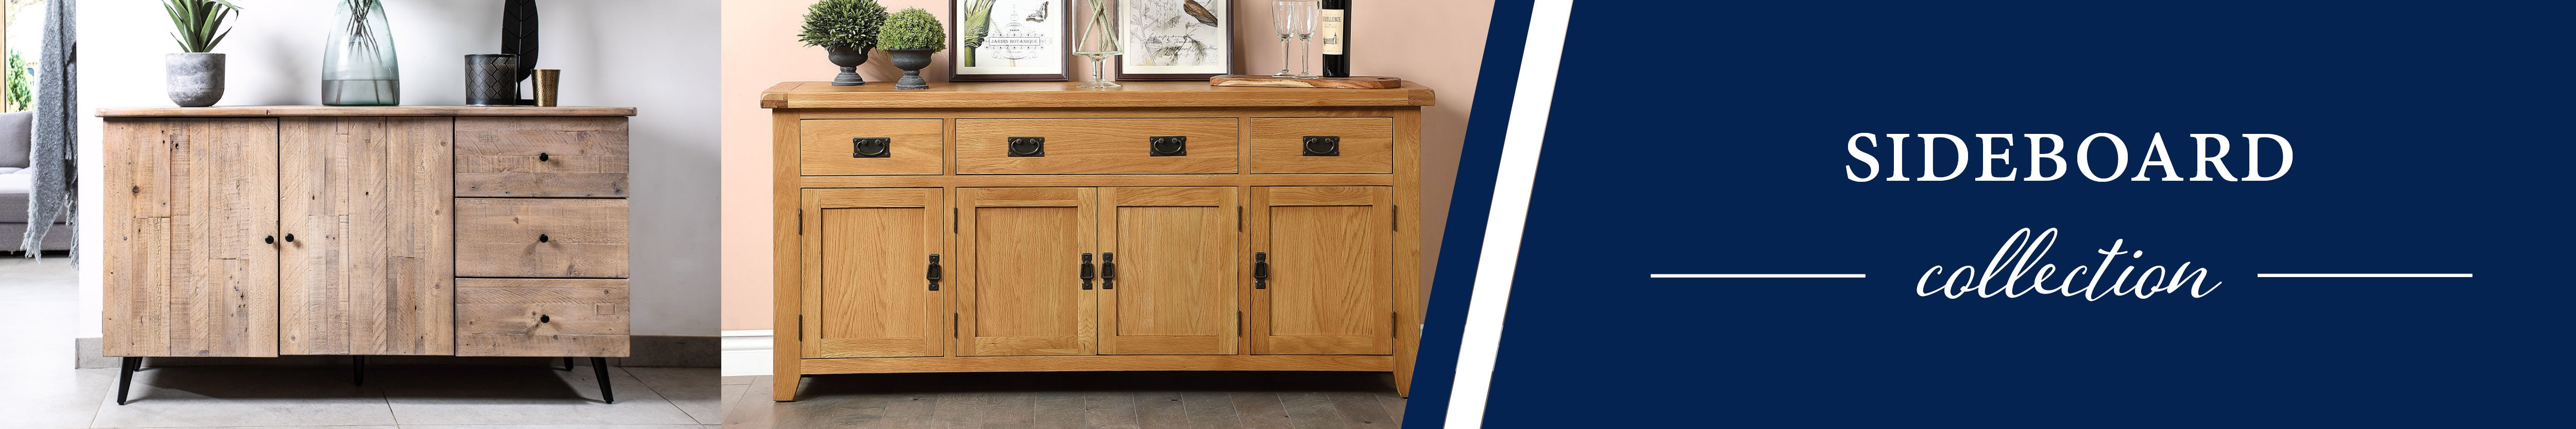 HomePlus Furniture | Sideboard Collection